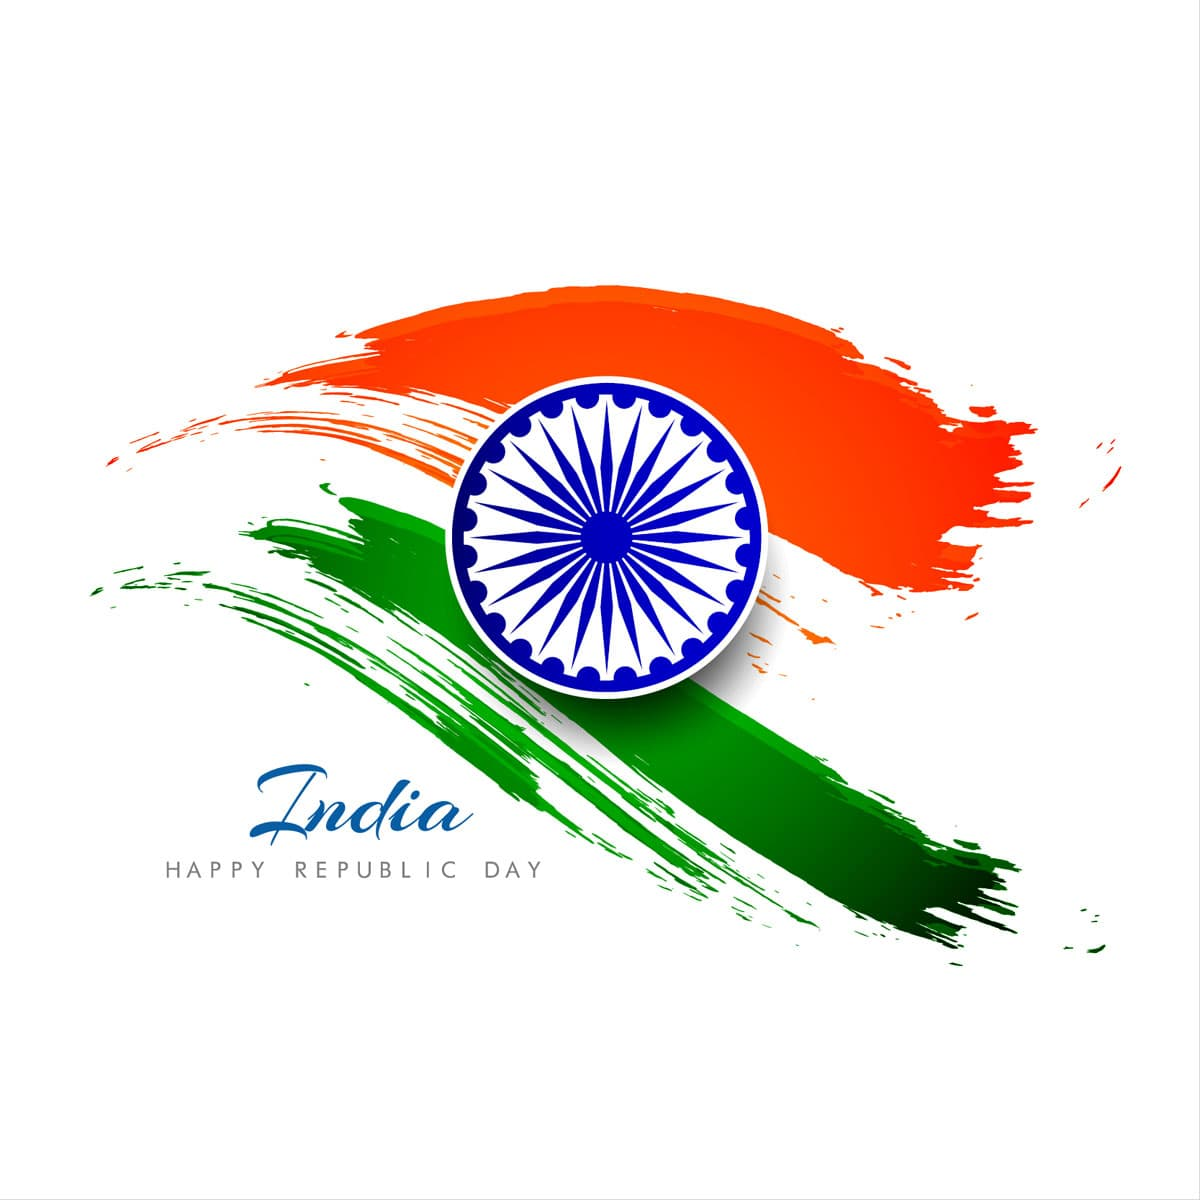 Indian Flag Images Wallpapers Download Indian%2BFlag%2BImages%2BDownload